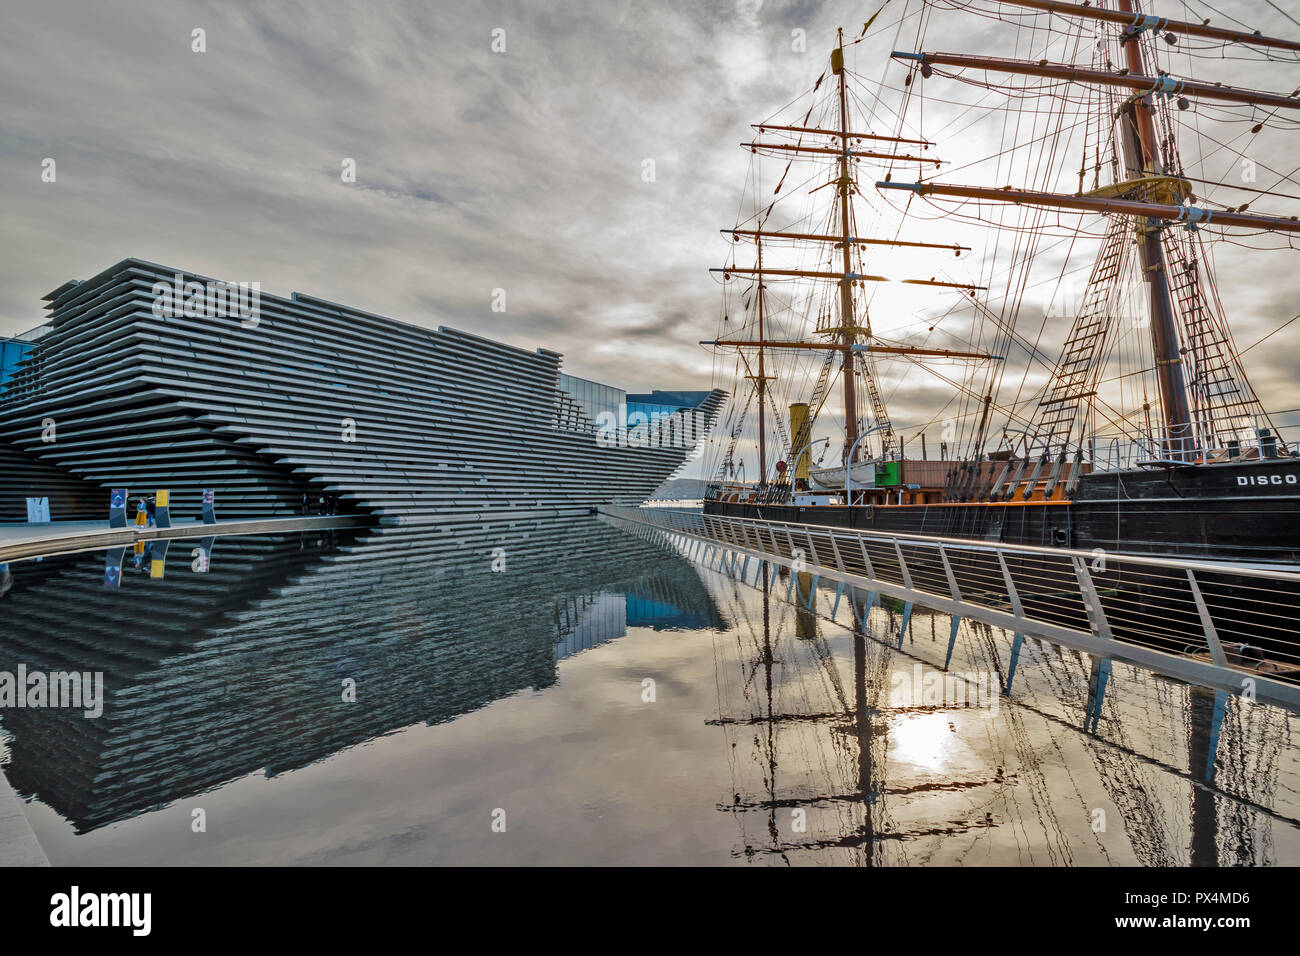 V & A MUSEUM OF DESIGN DUNDEE SCOTLAND EARLY MORNING REFLECTIONS THE BUILDING AND THE SHIP DISCOVERY - Stock Image